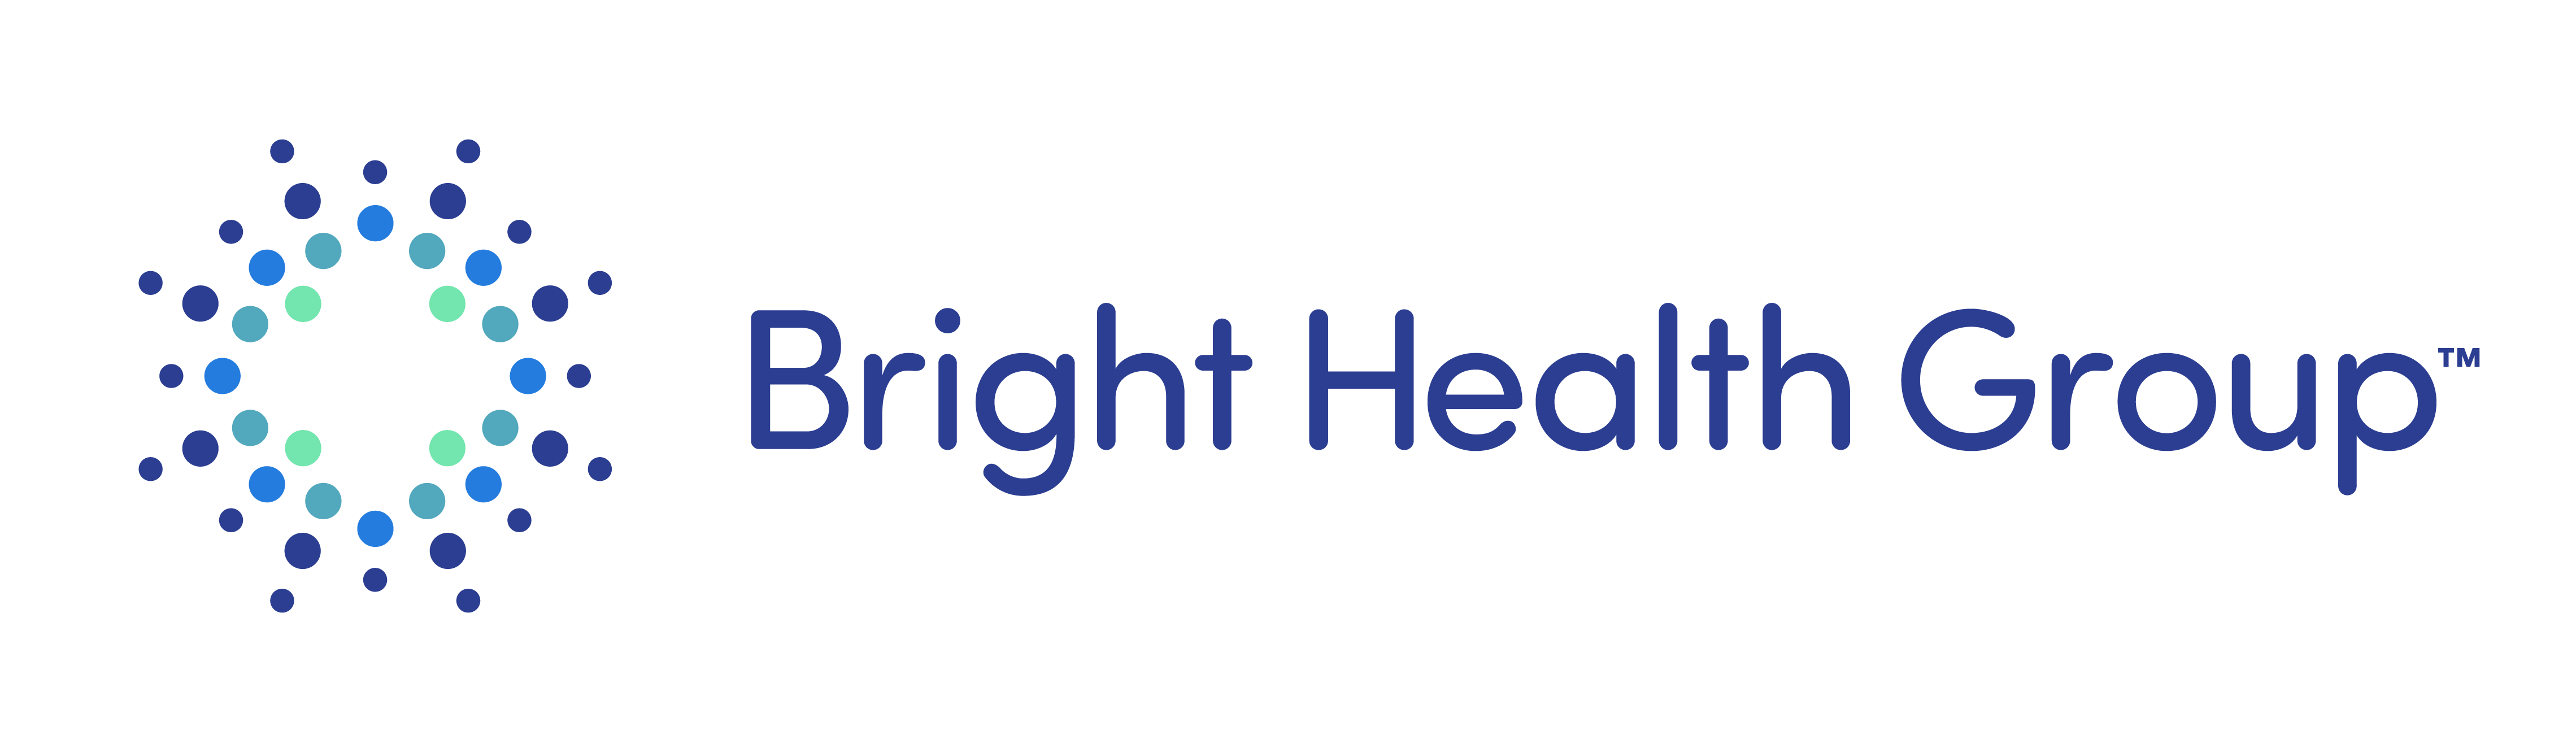 IPO Bright Health Group